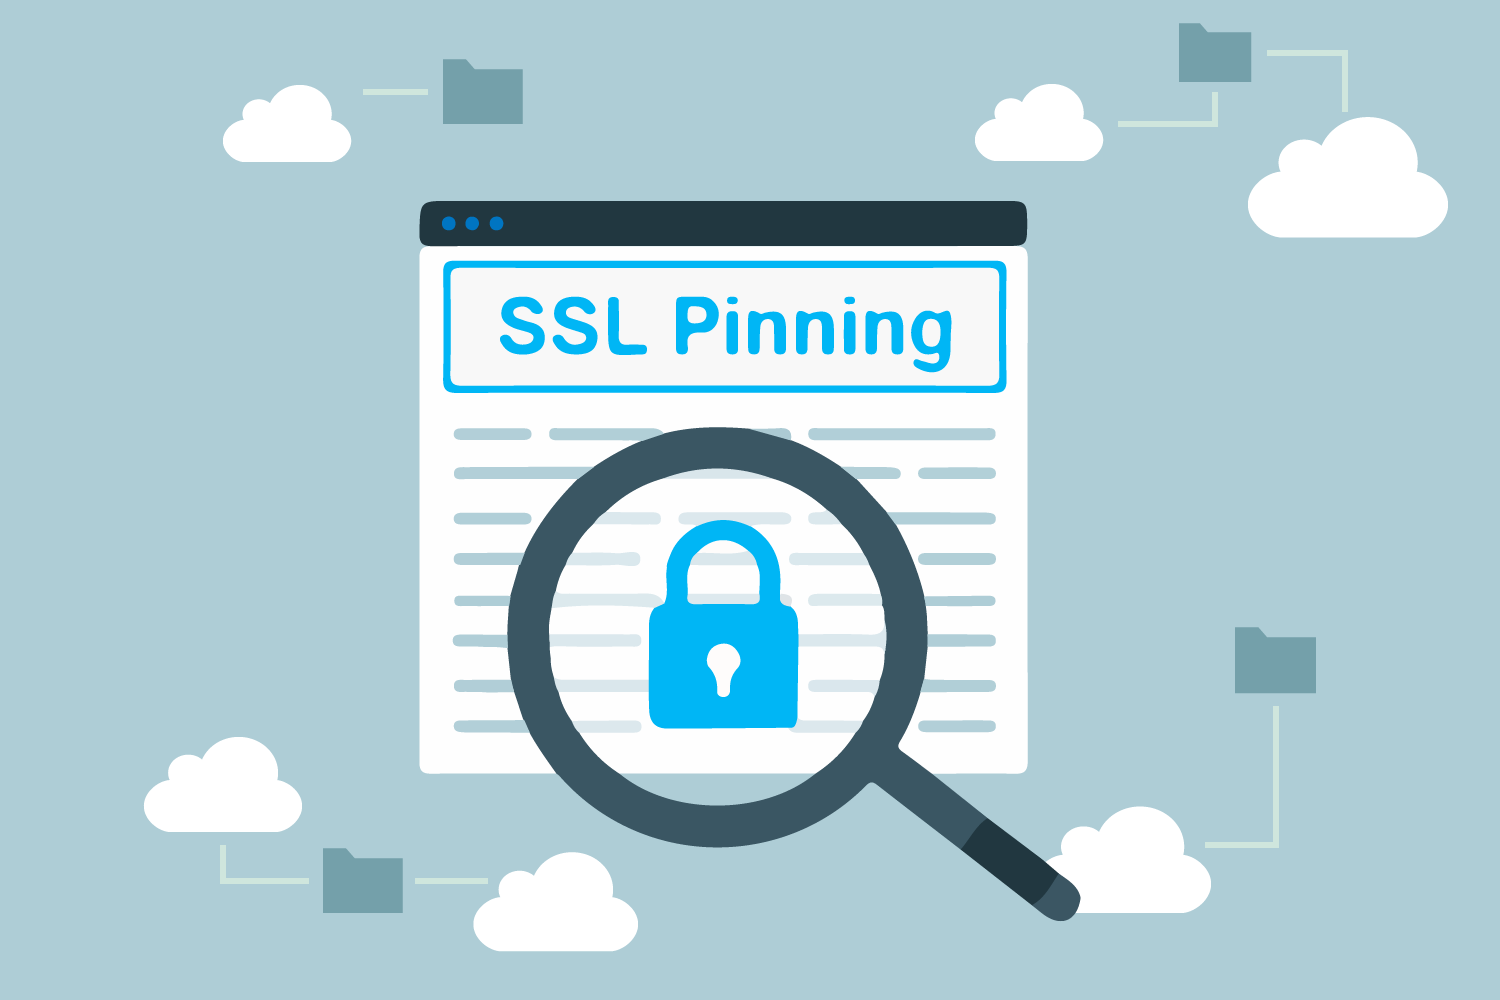 How to bypass certificate validation (SSL pinning) - InfoSec Write